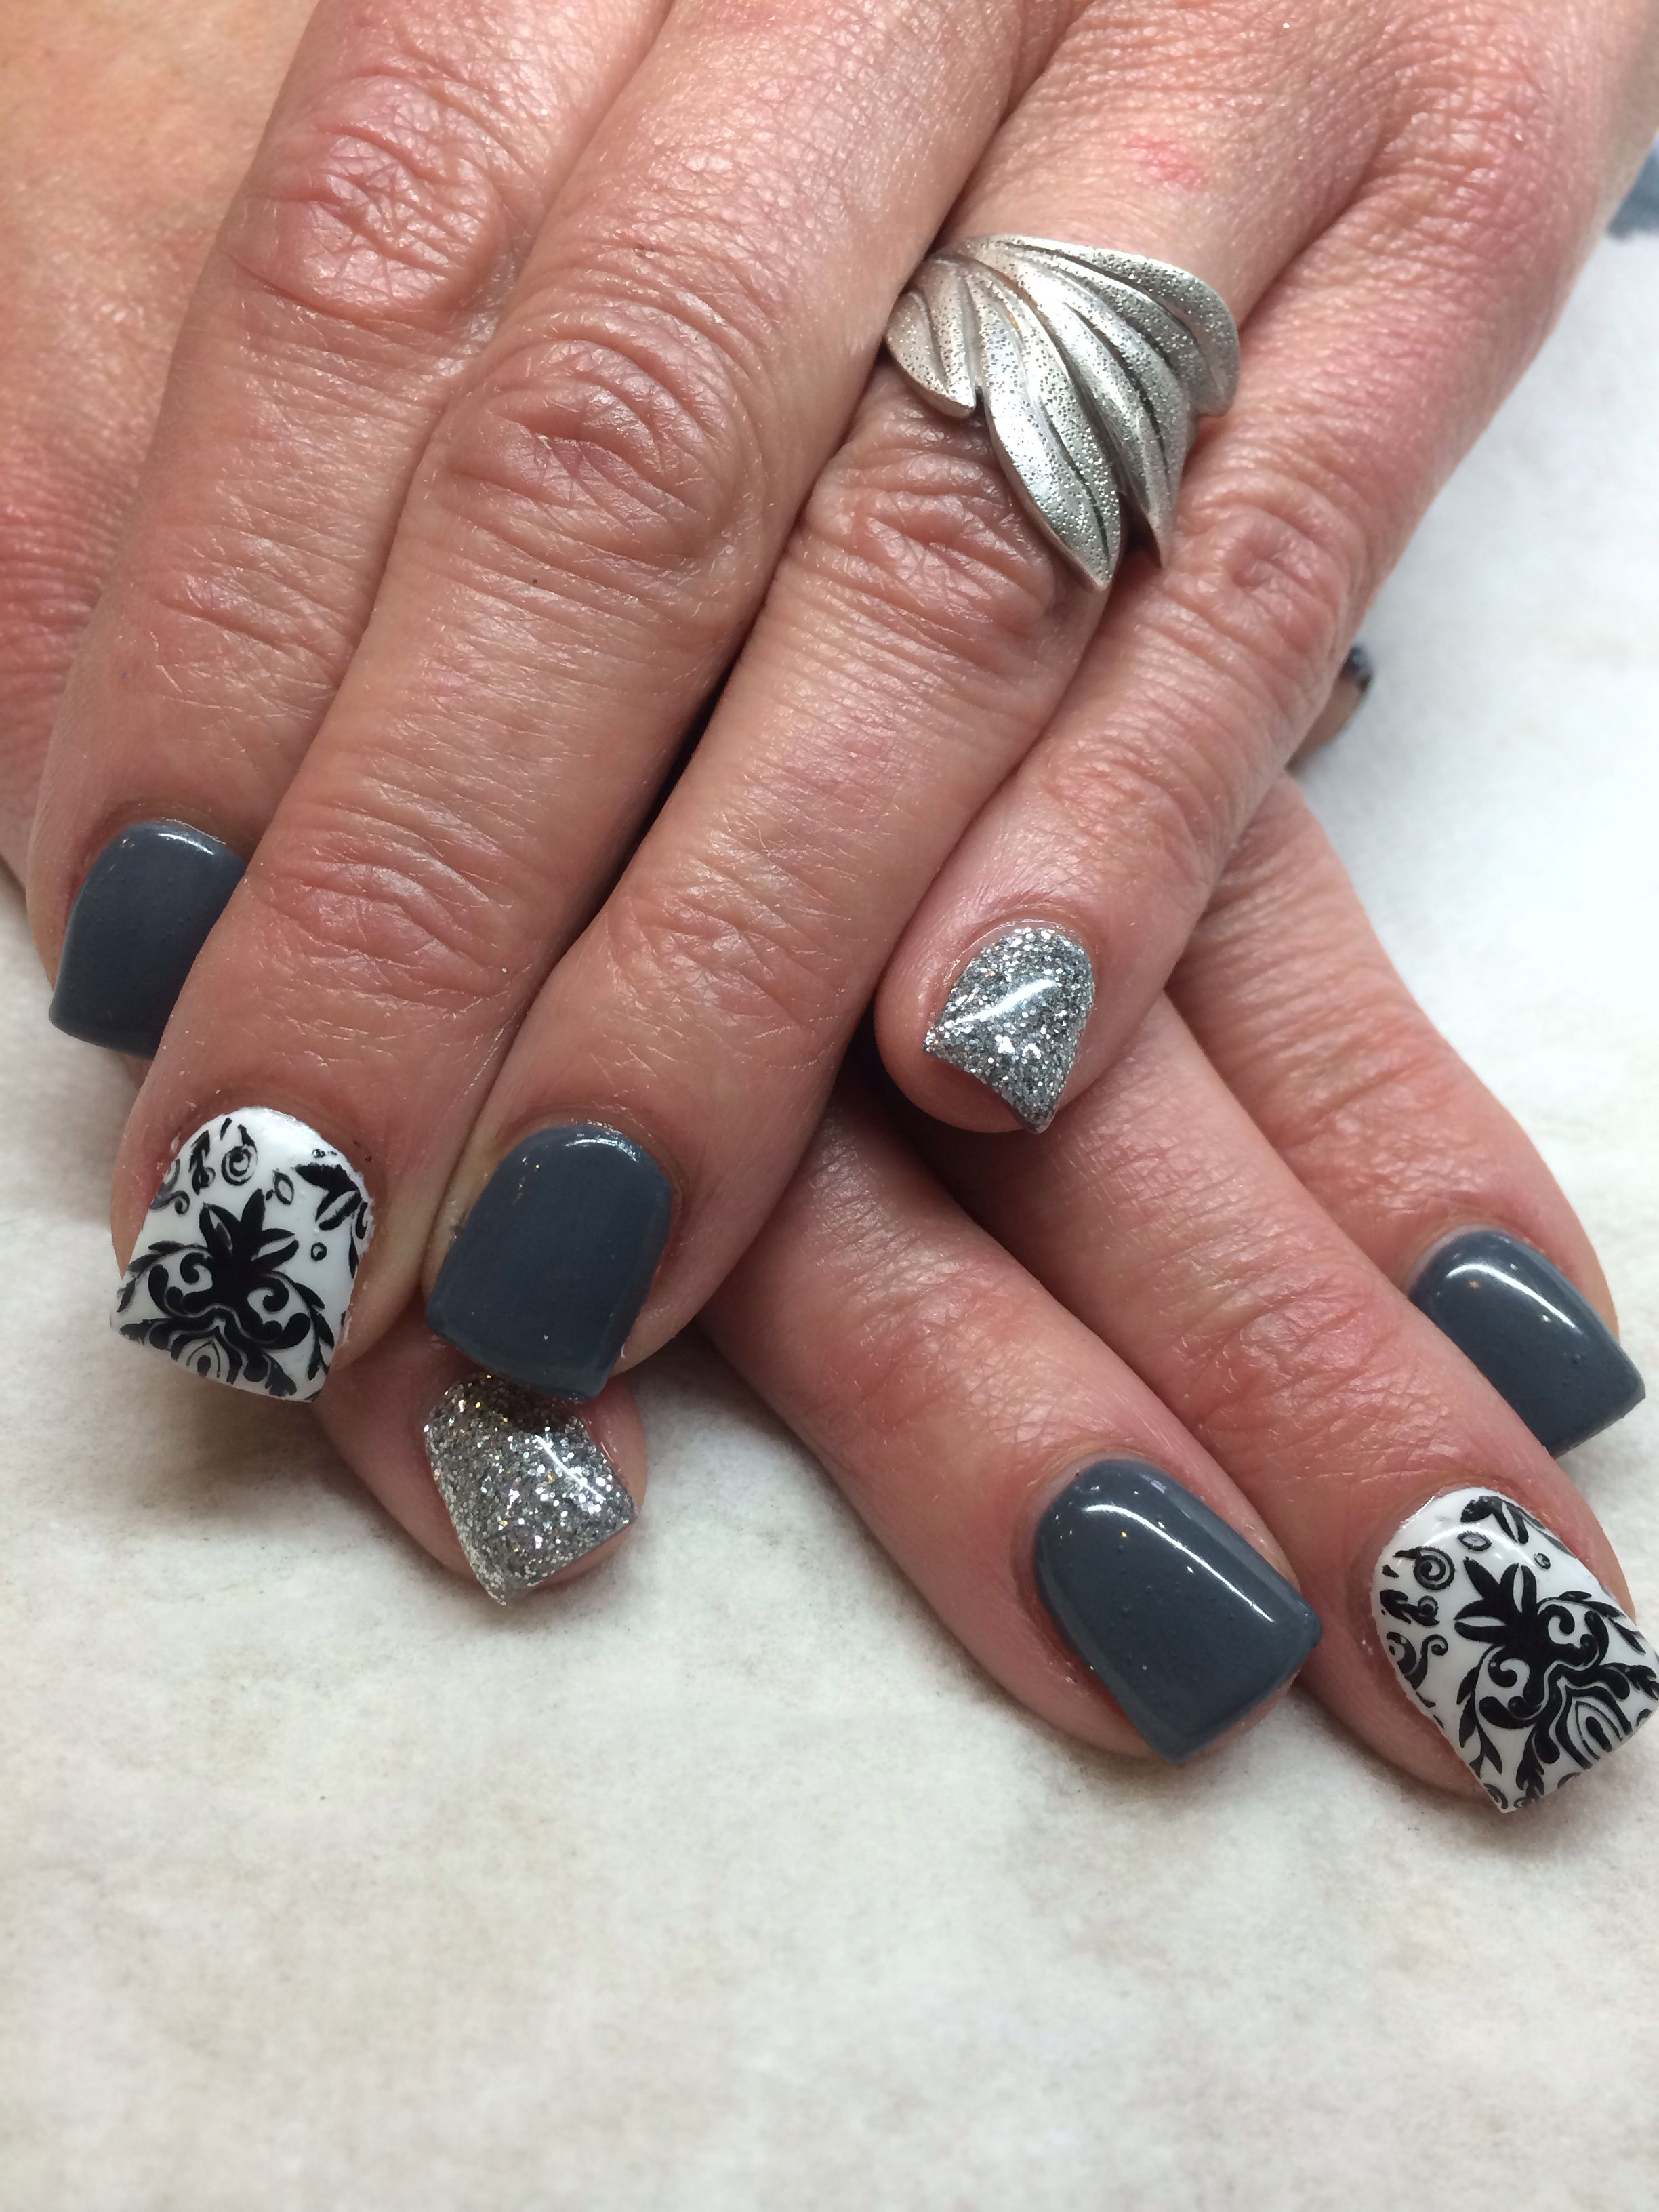 Gel nail designs grey black and white | nail designs and nail art ...